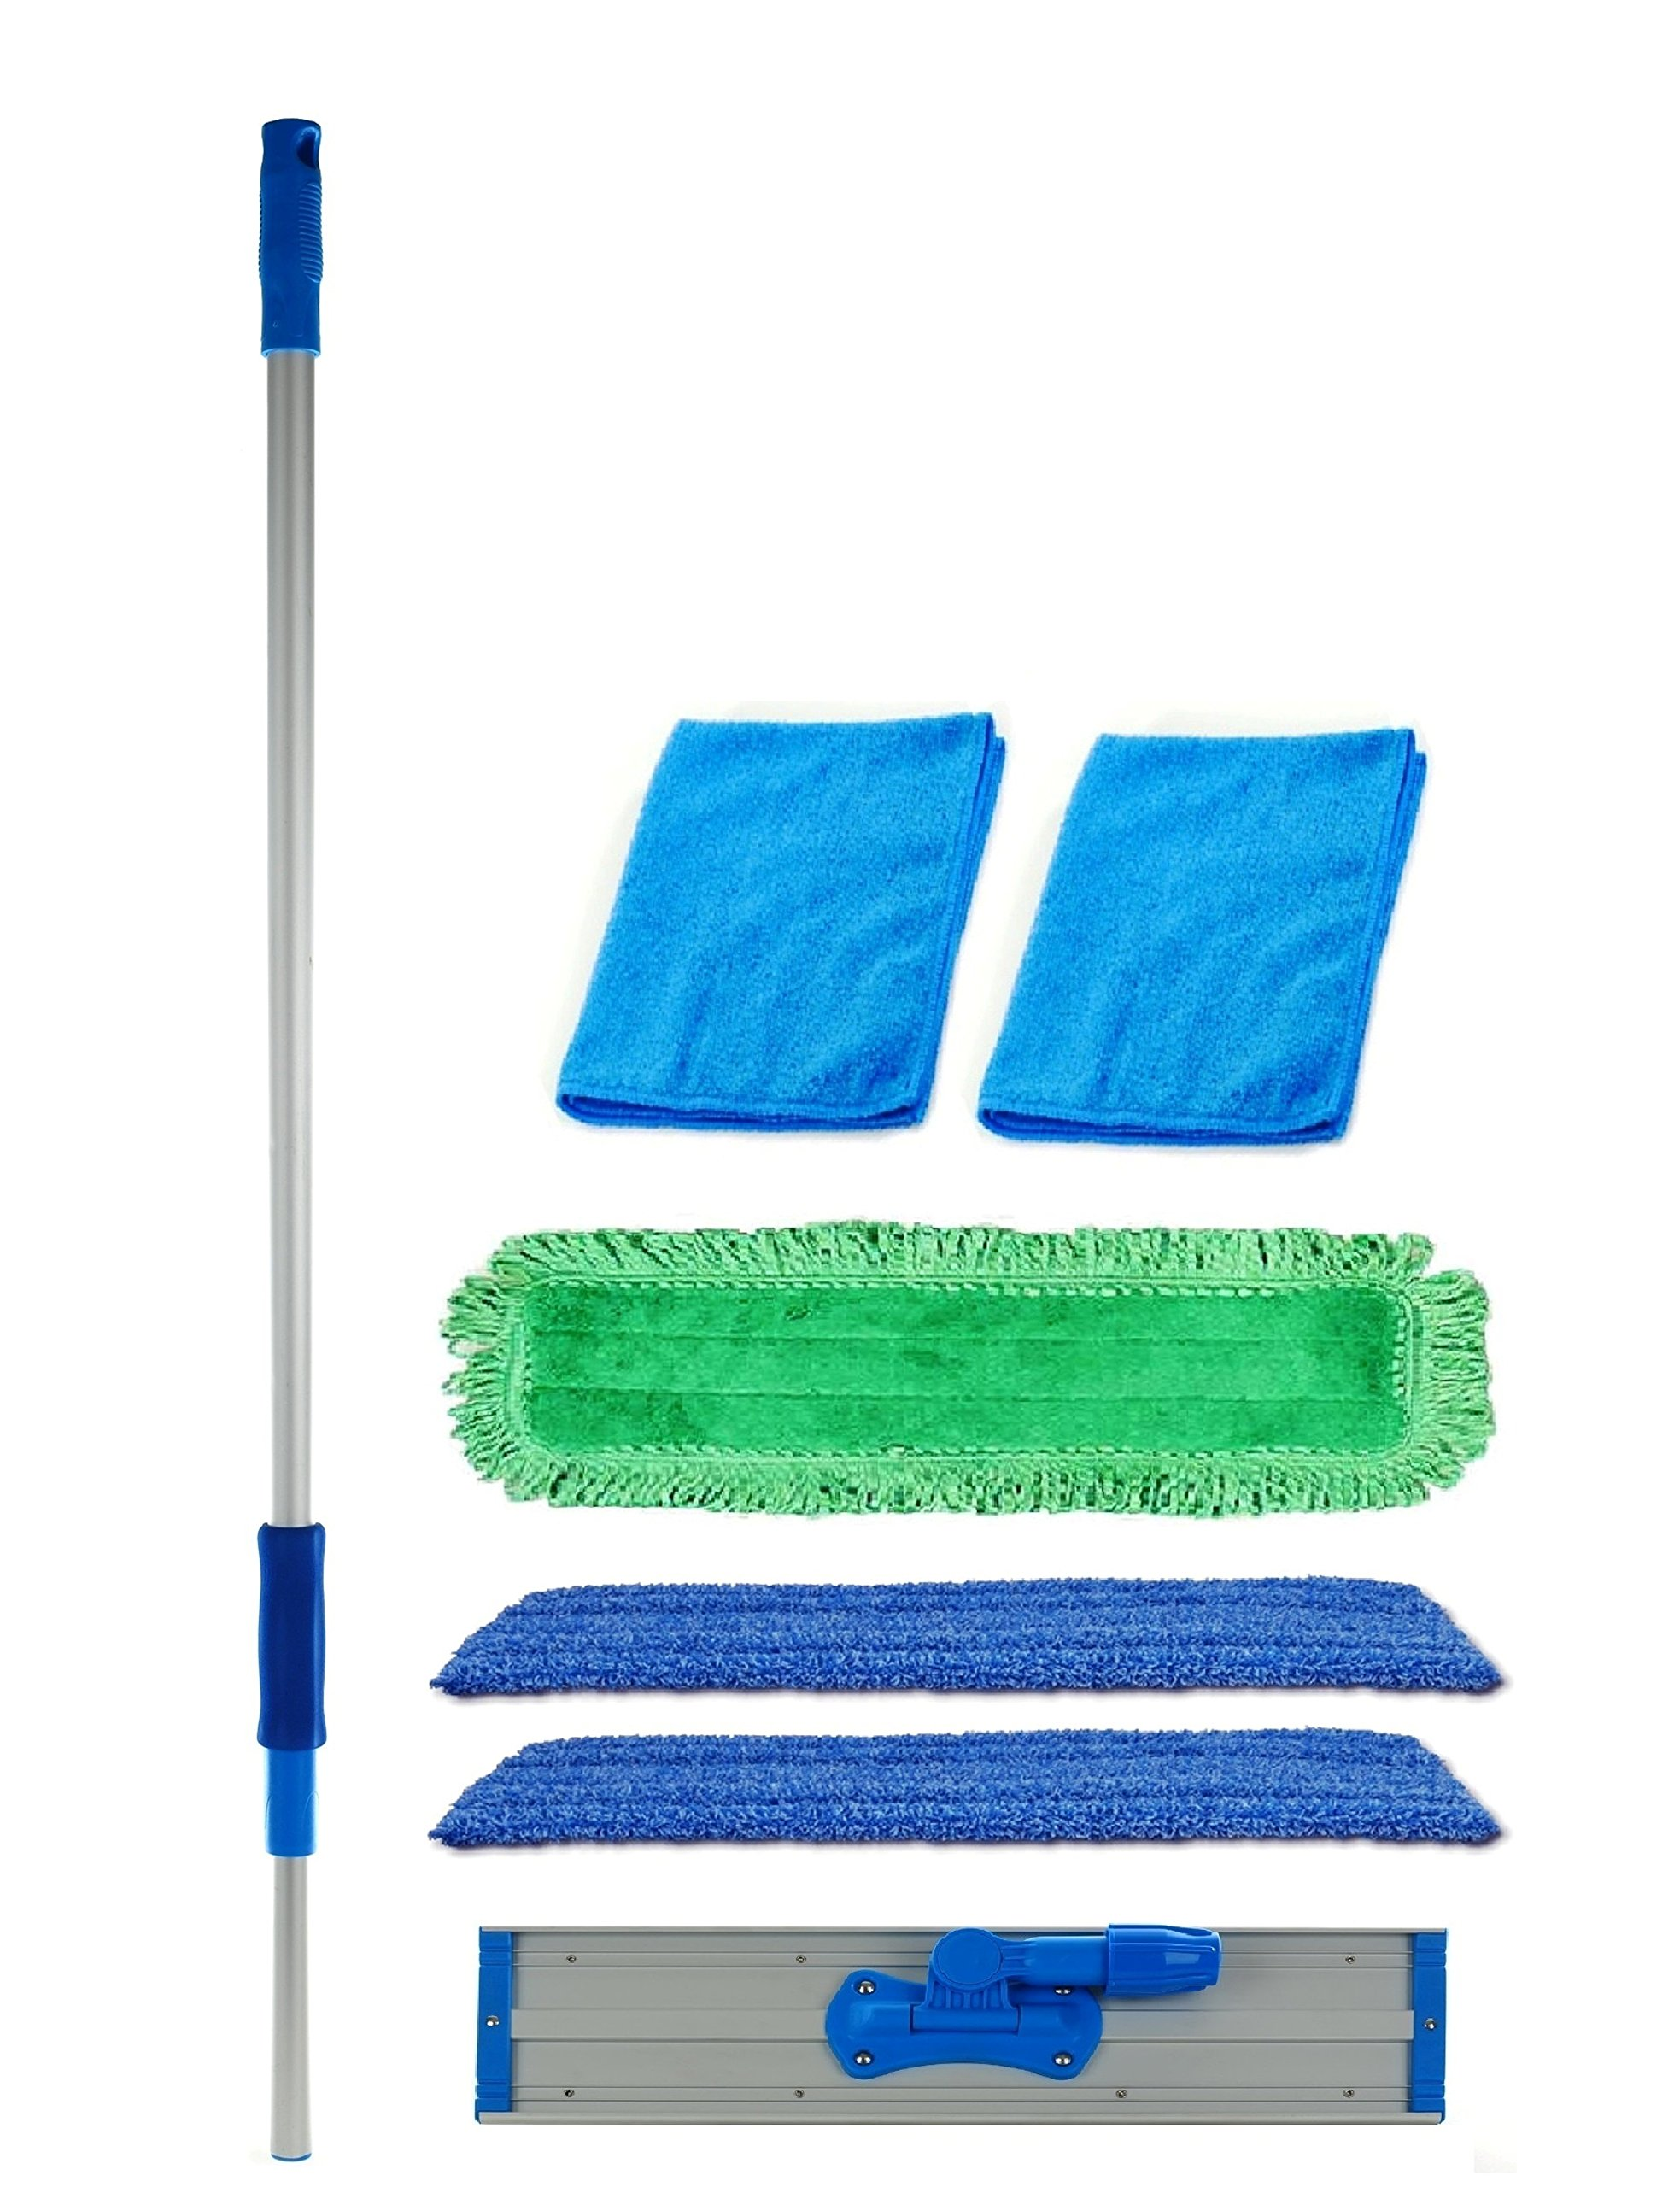 Real Clean 18 inch Commercial Microfiber Mop Kit by Real Clean